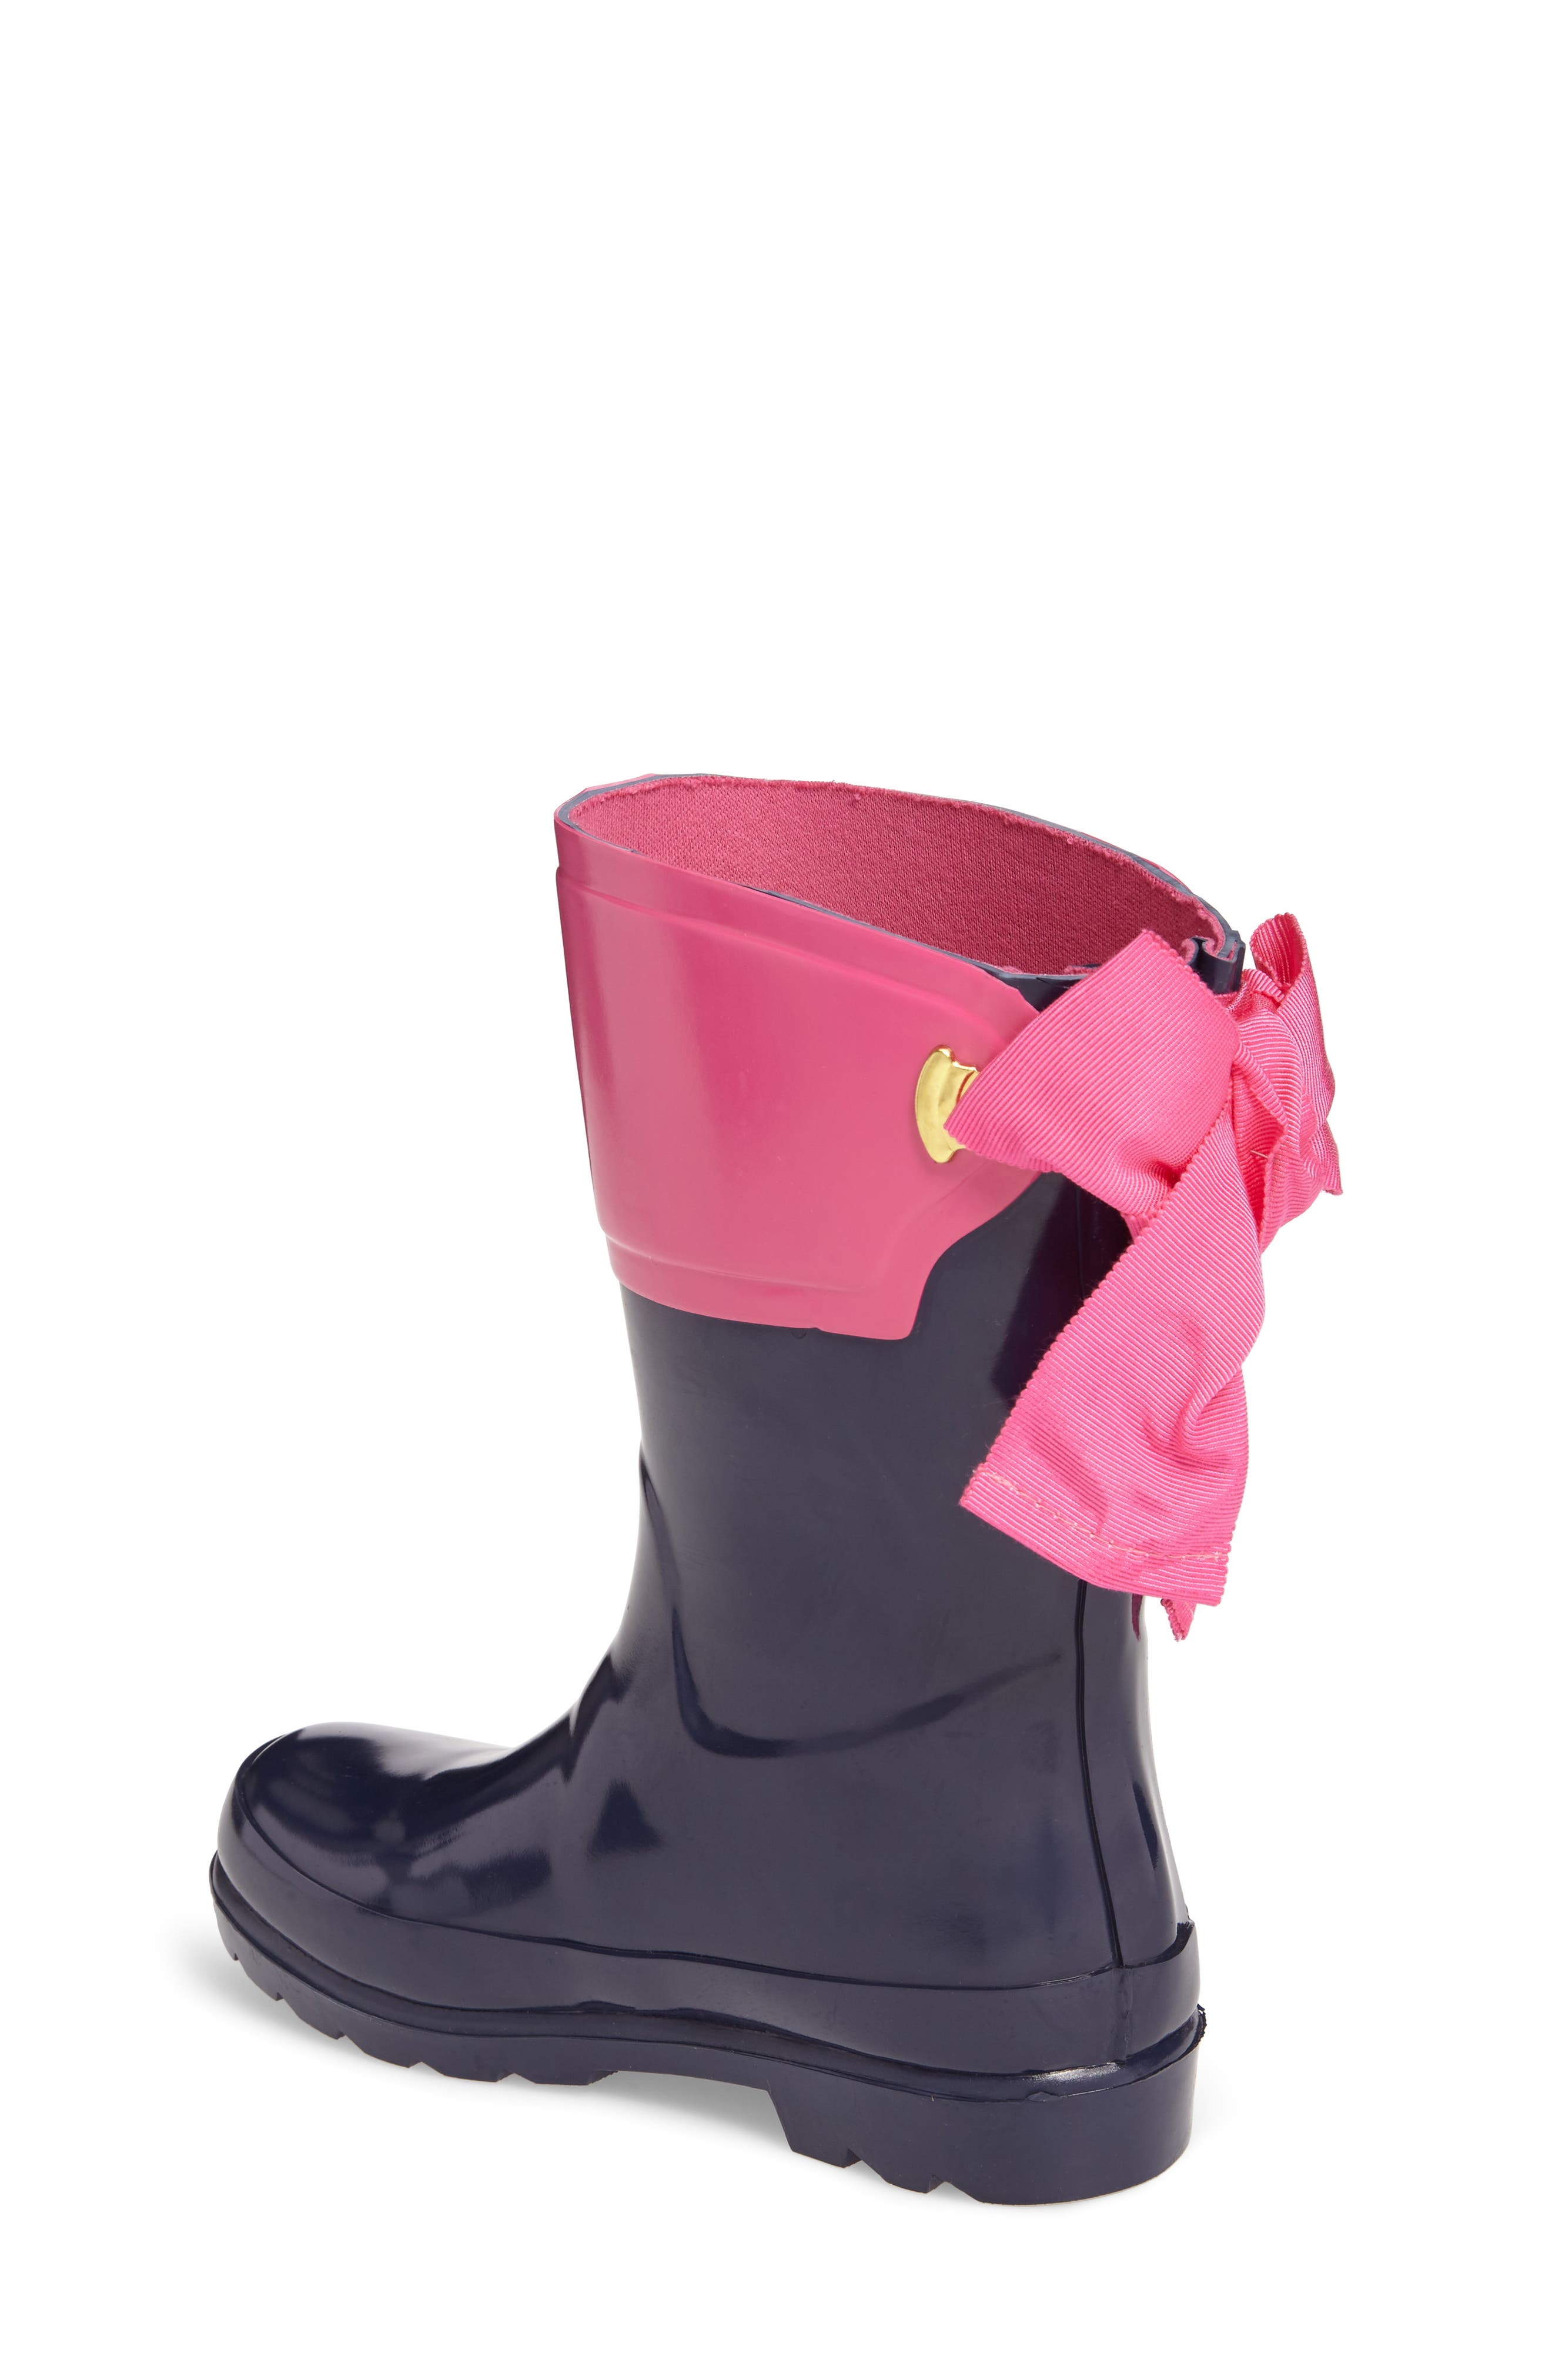 Evedon Bow Waterproof Rain Boot,                             Alternate thumbnail 2, color,                             French Navy